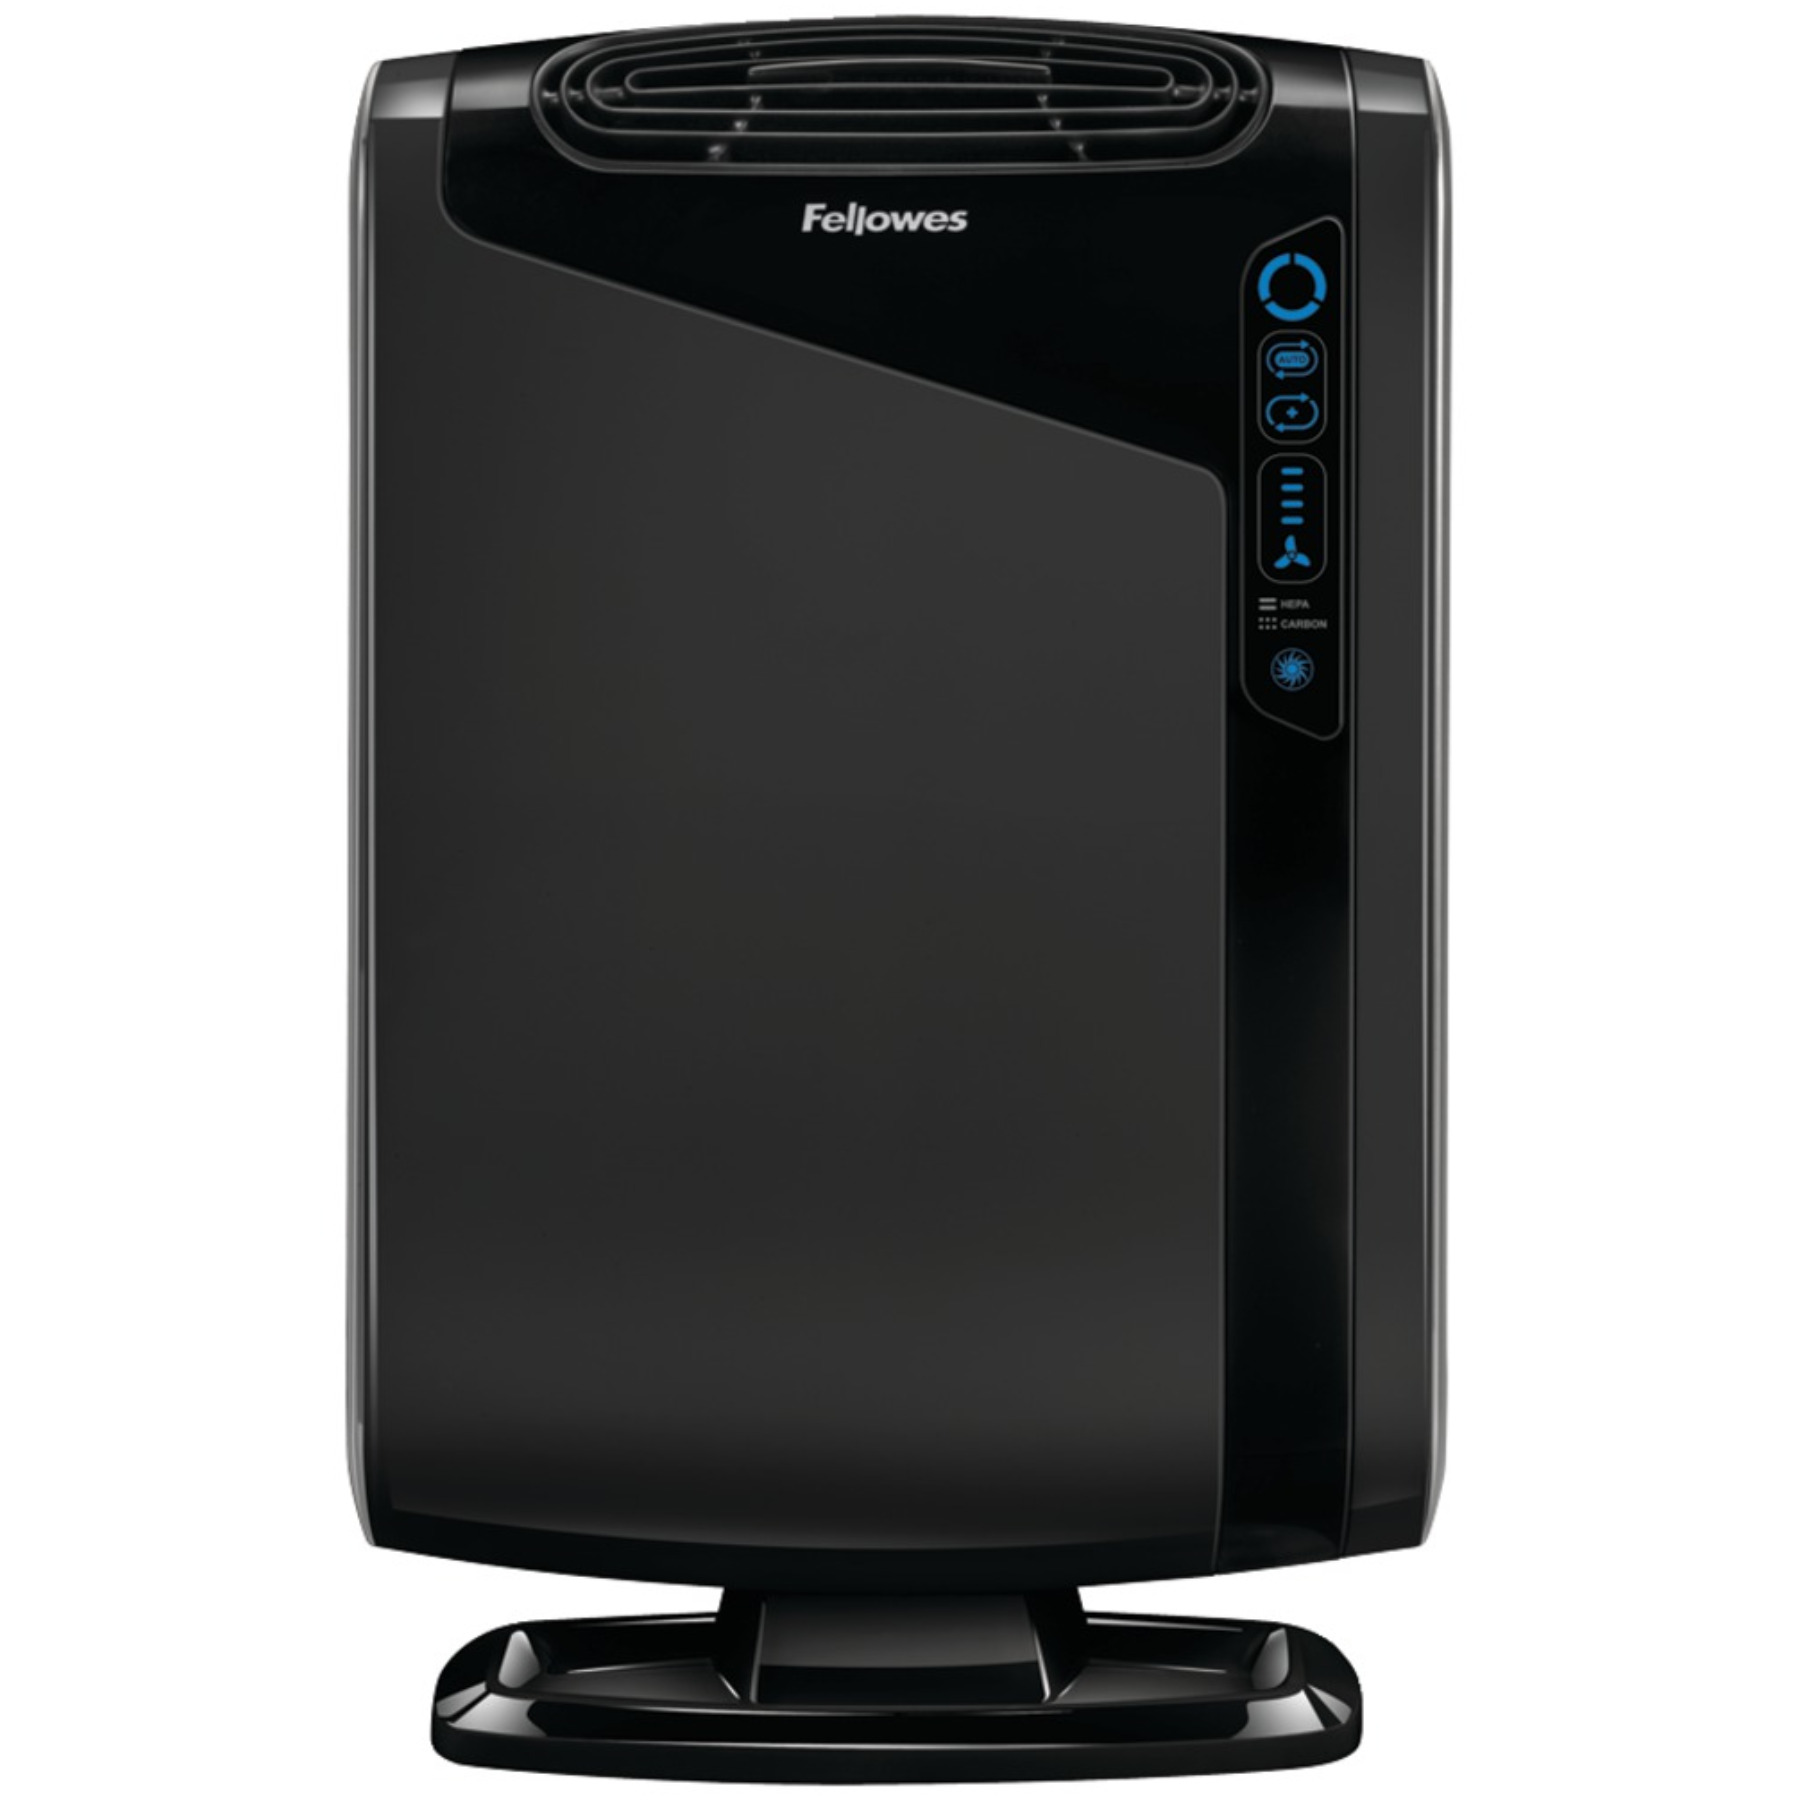 Fellowes 9286201 Aeramax 290 Air Purifier 9286201 9286201